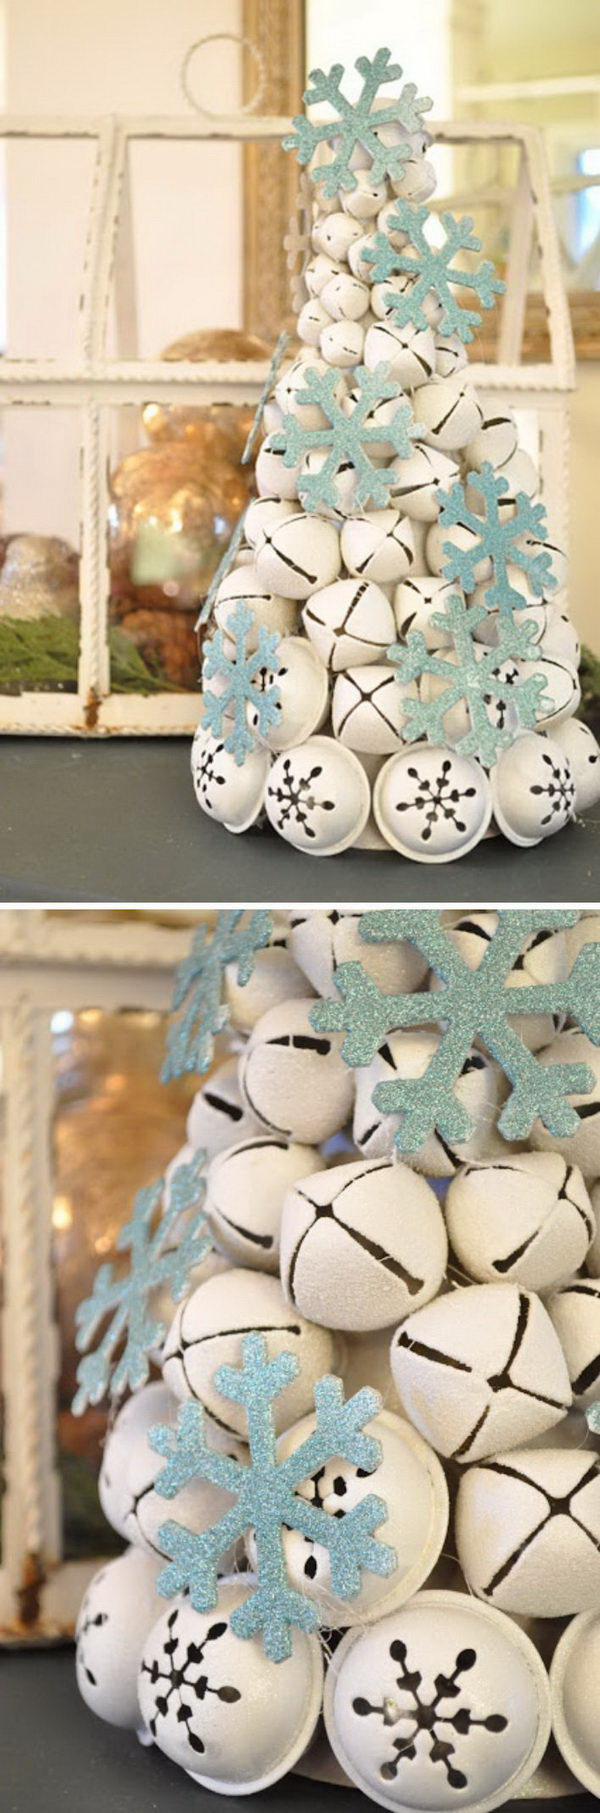 Homemade Projects & Ideas for Christmas Decoration: DIY Jingle Bell Tree.